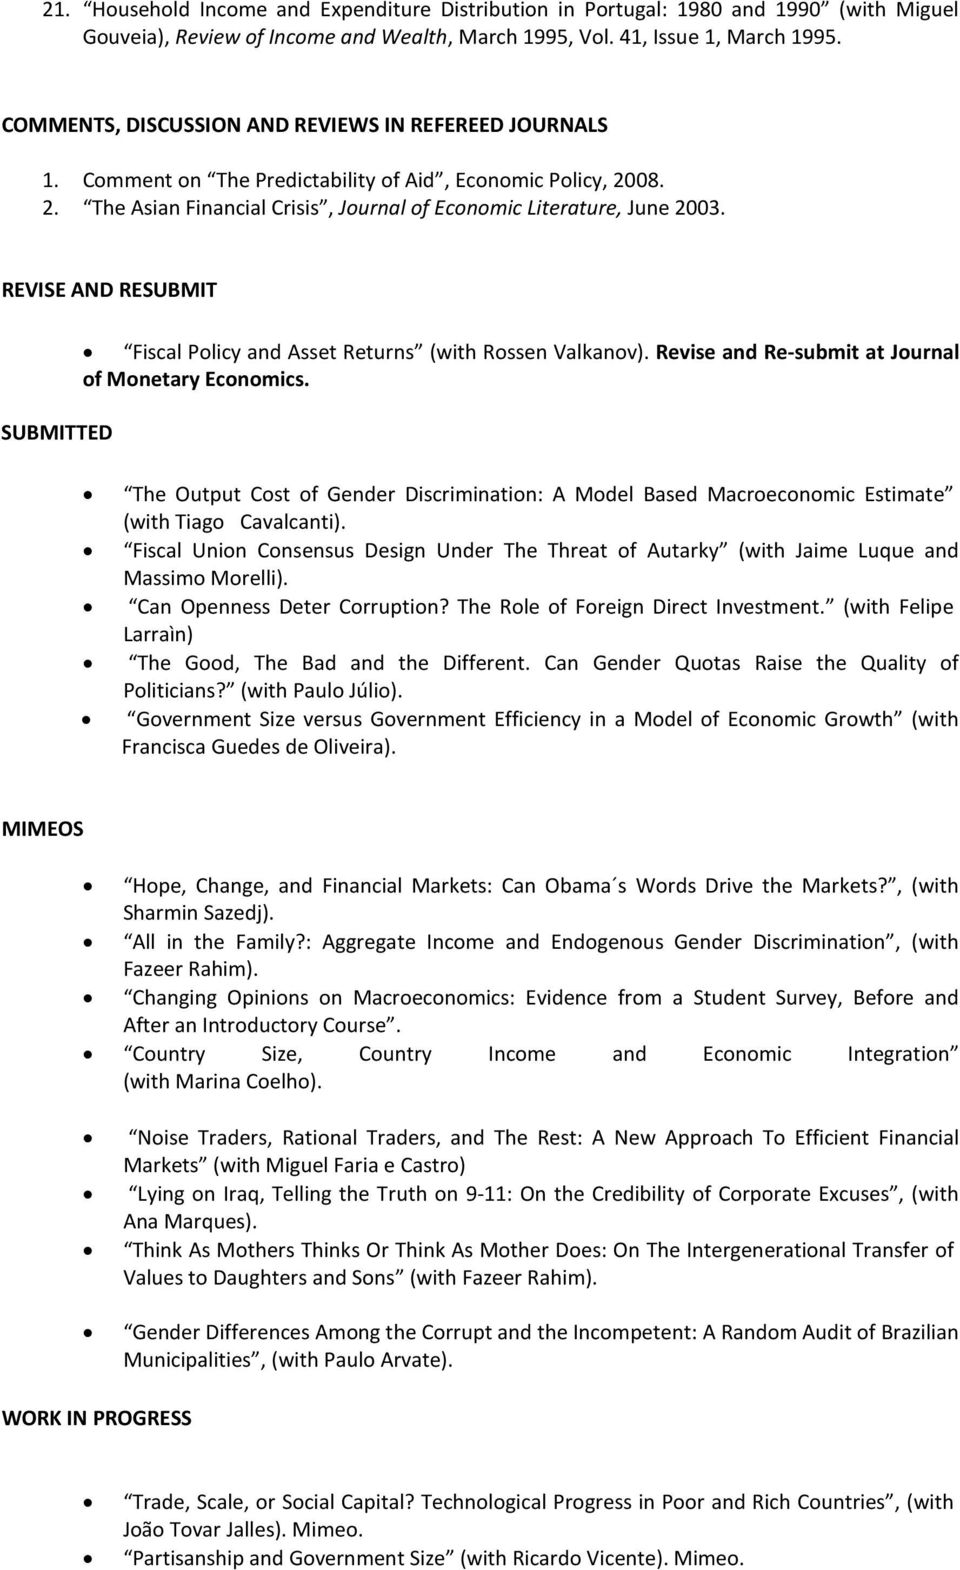 REVISE AND RESUBMIT SUBMITTED Fiscal Policy and Asset Returns (with Rossen Valkanov). Revise and Re-submit at Journal of Monetary Economics.